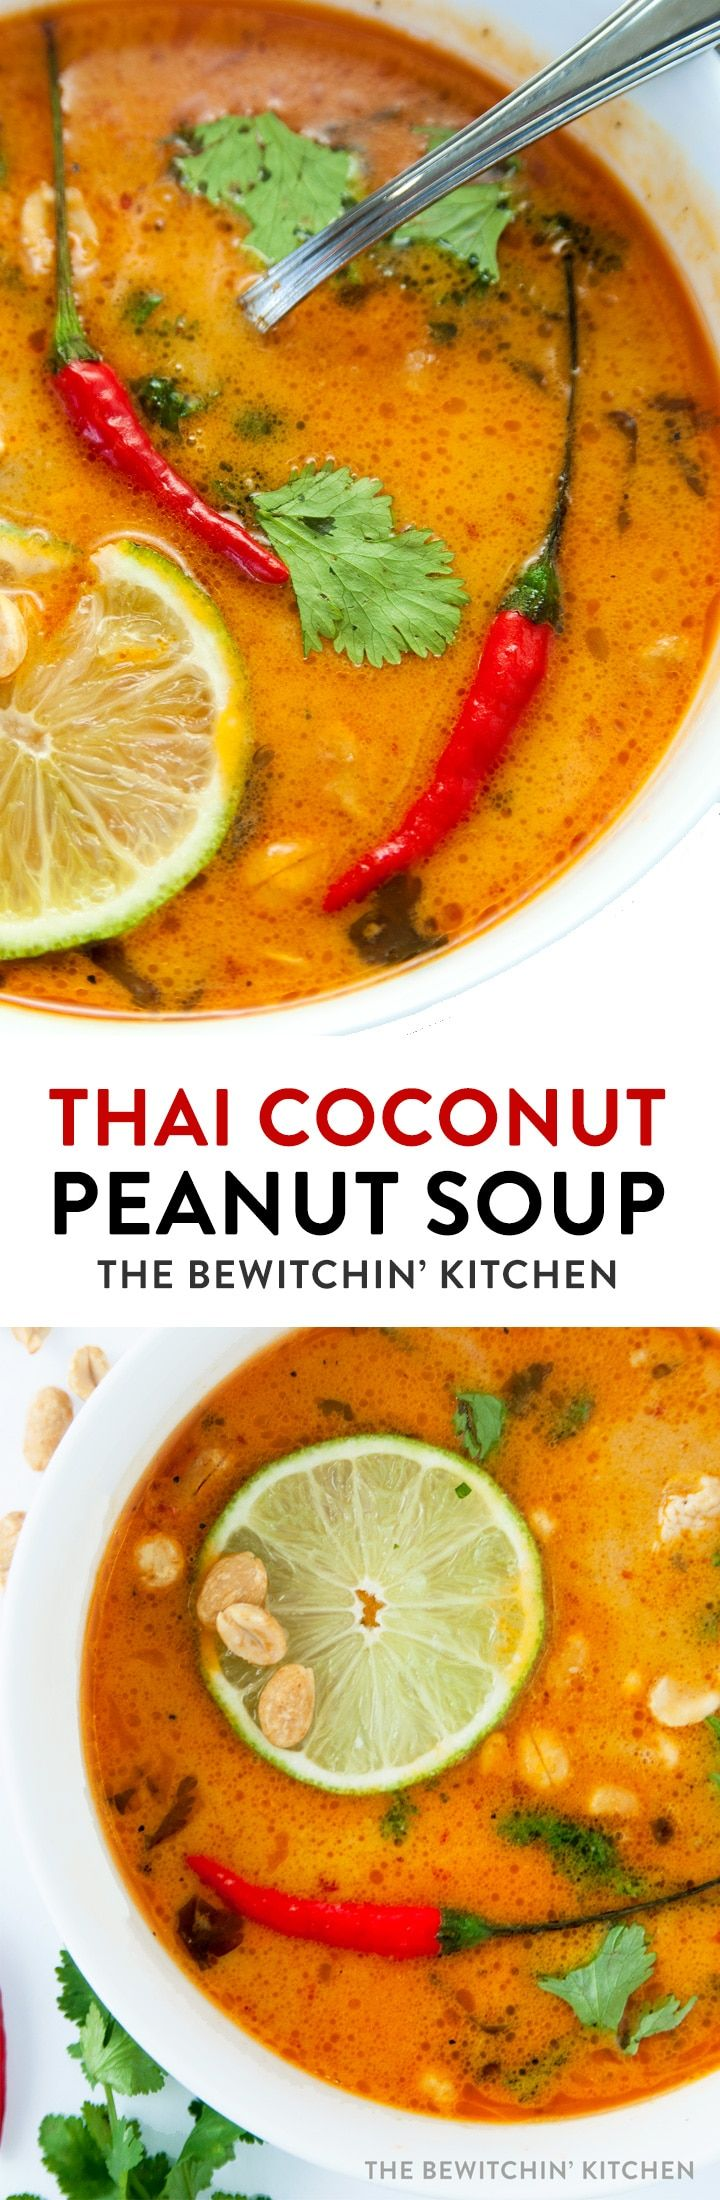 This Thai Coconut Peanut soup recipe makes a delicious and easy dinner. Made with chicken, chili paste, peanut butter, coconut milk and spices makes this perfect for your healthy dinner recipes board.  via @RandaDerkson